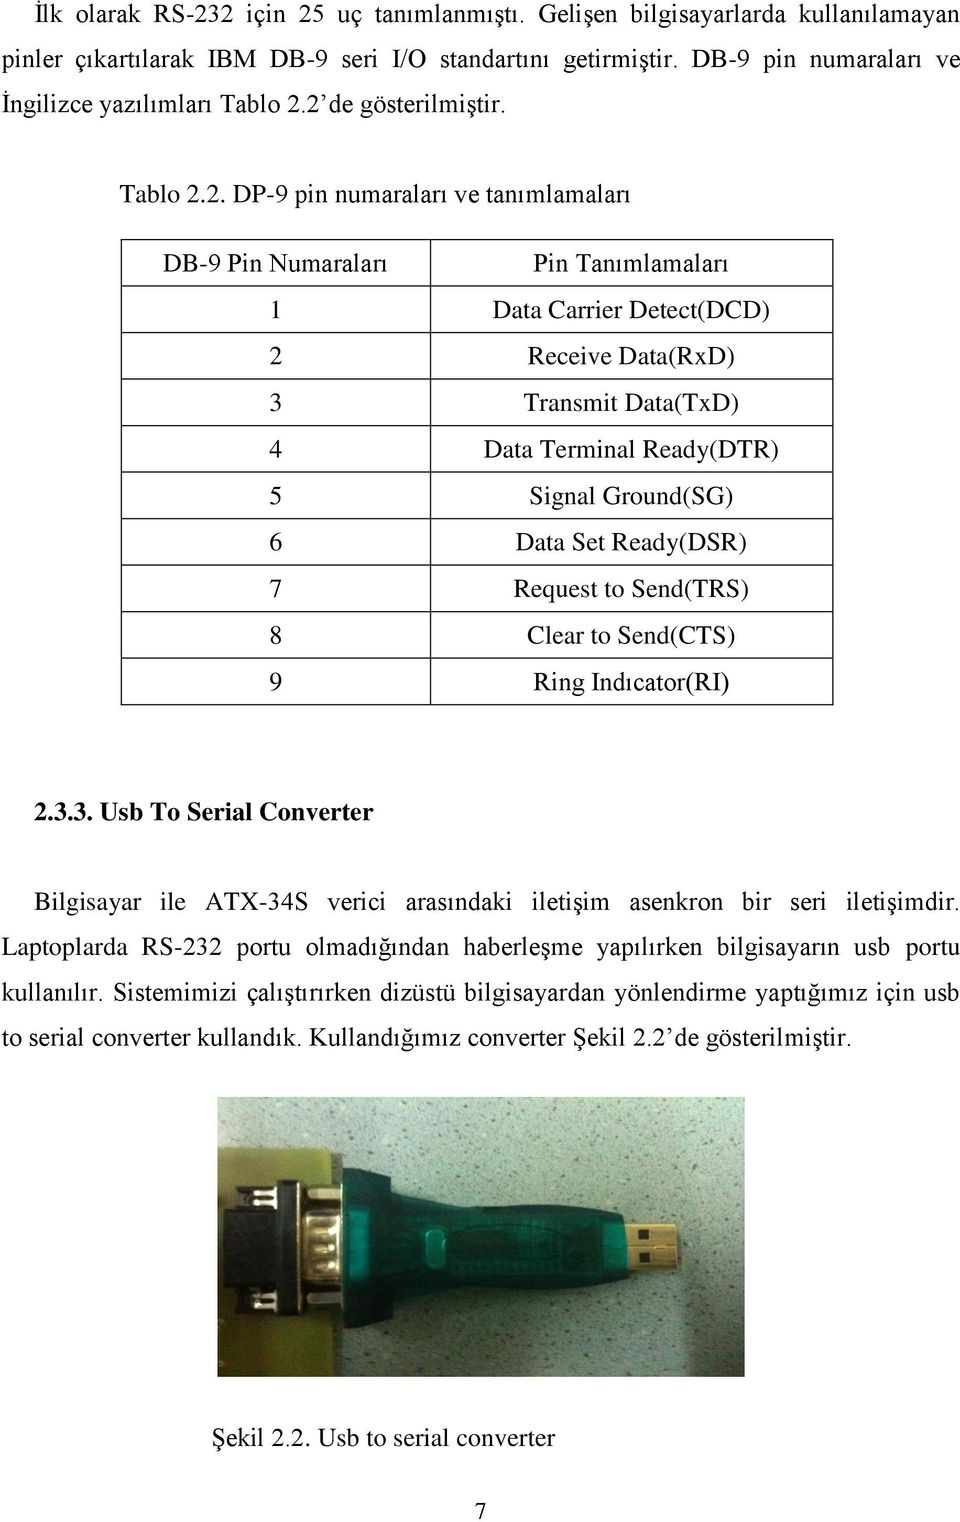 Ready(DTR) 5 Signal Ground(SG) 6 Data Set Ready(DSR) 7 Request to Send(TRS) 8 Clear to Send(CTS) 9 Ring Indıcator(RI) 2.3.